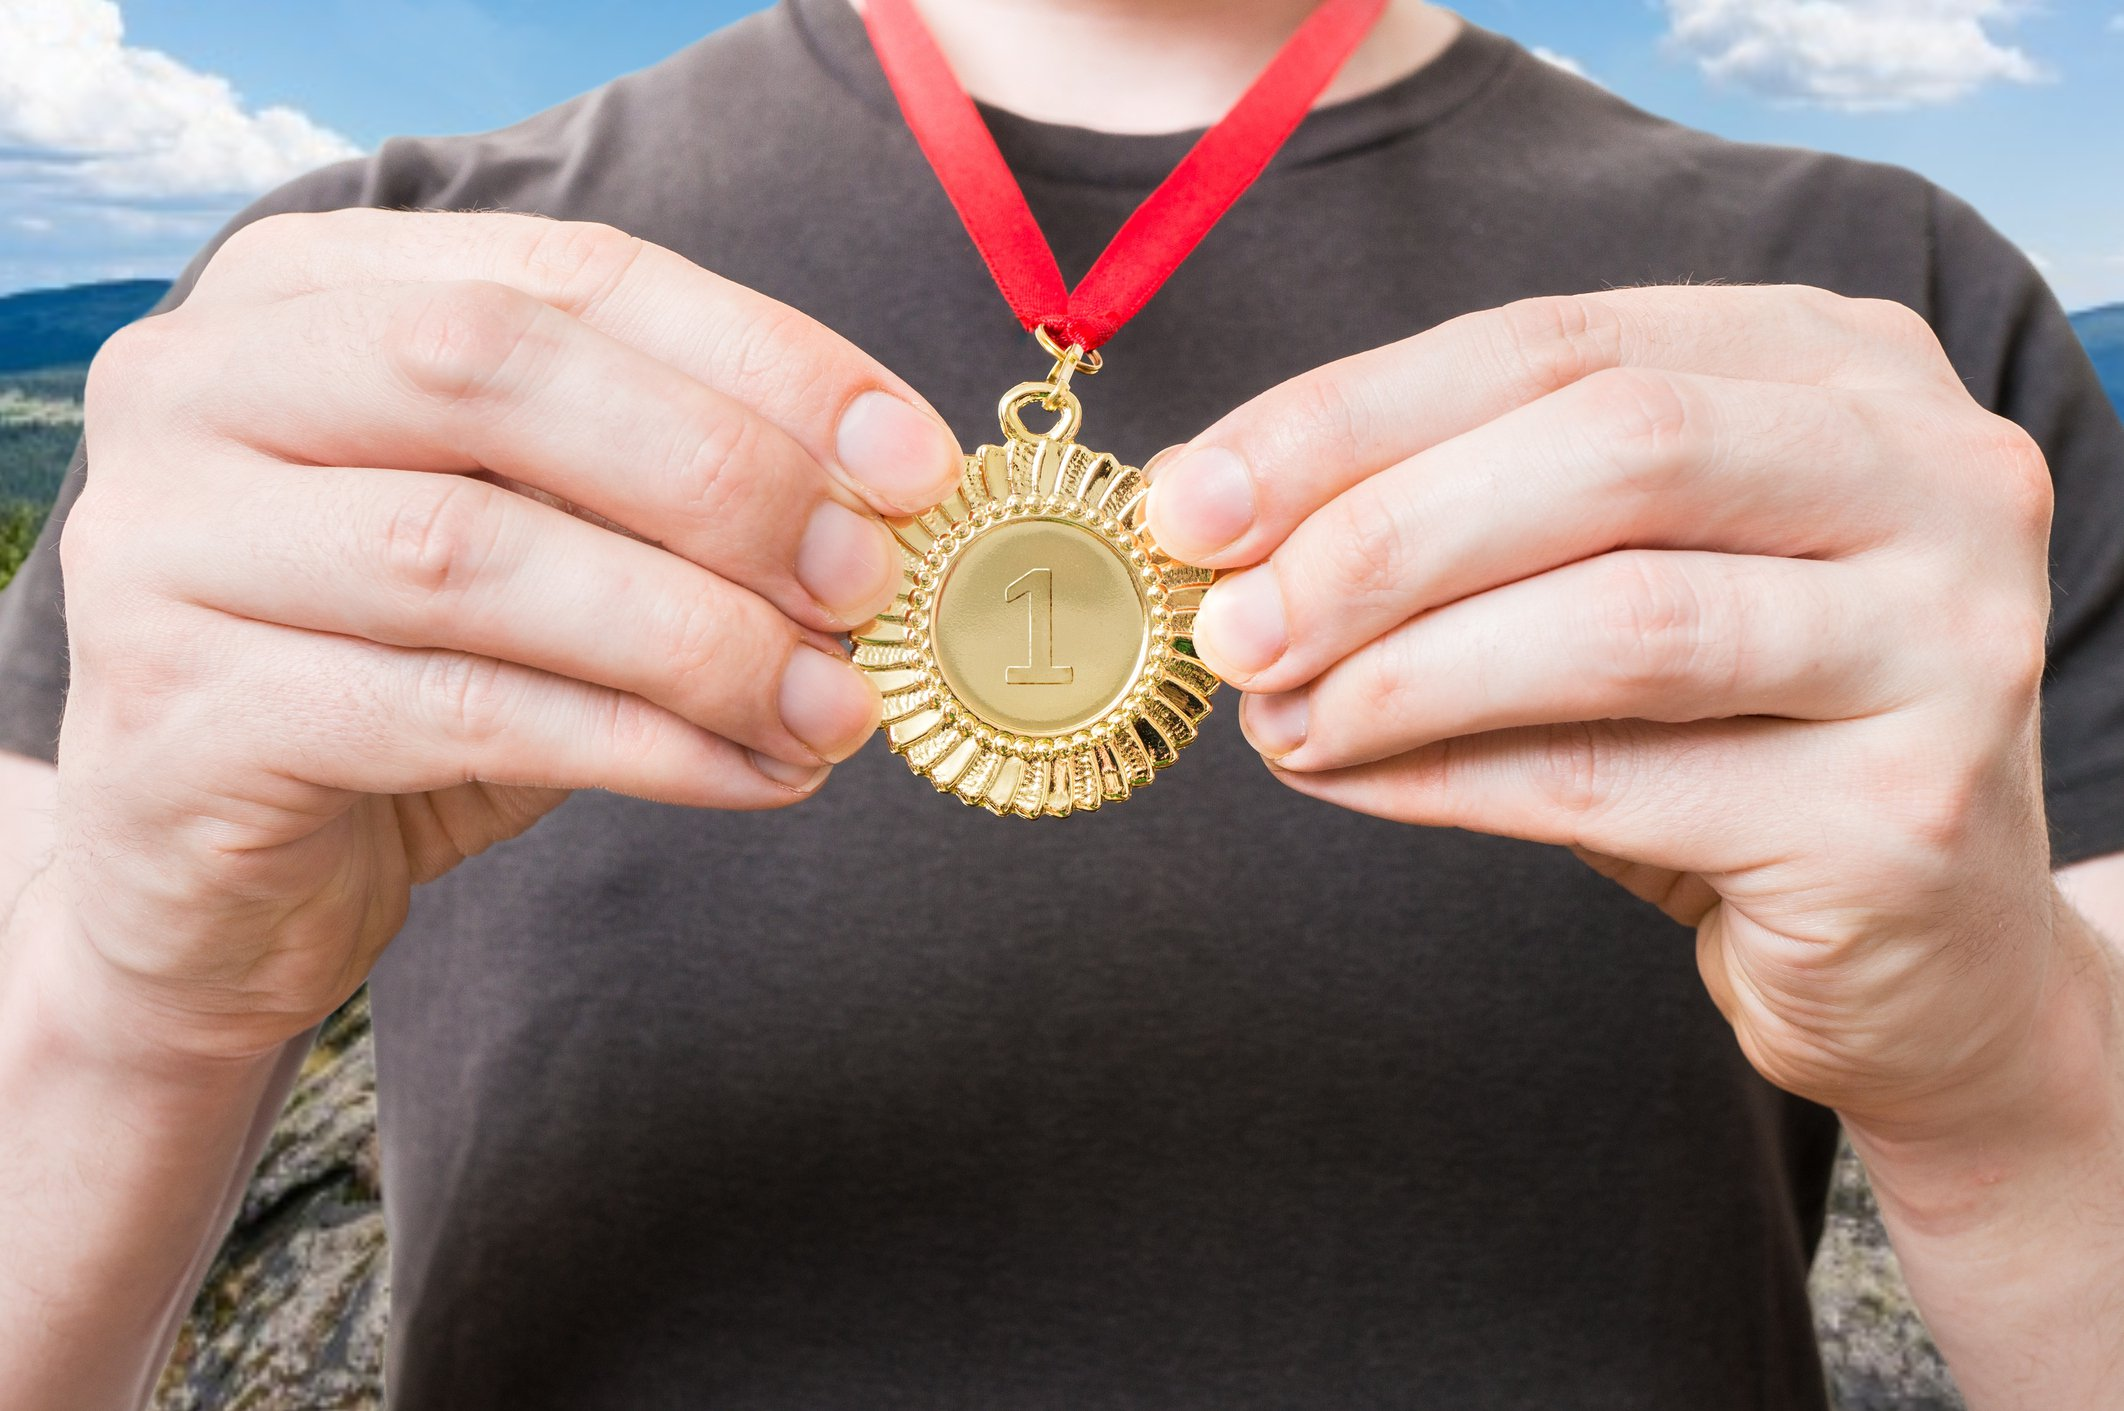 4 Ways To Outrank Your Amazon Seller Competition